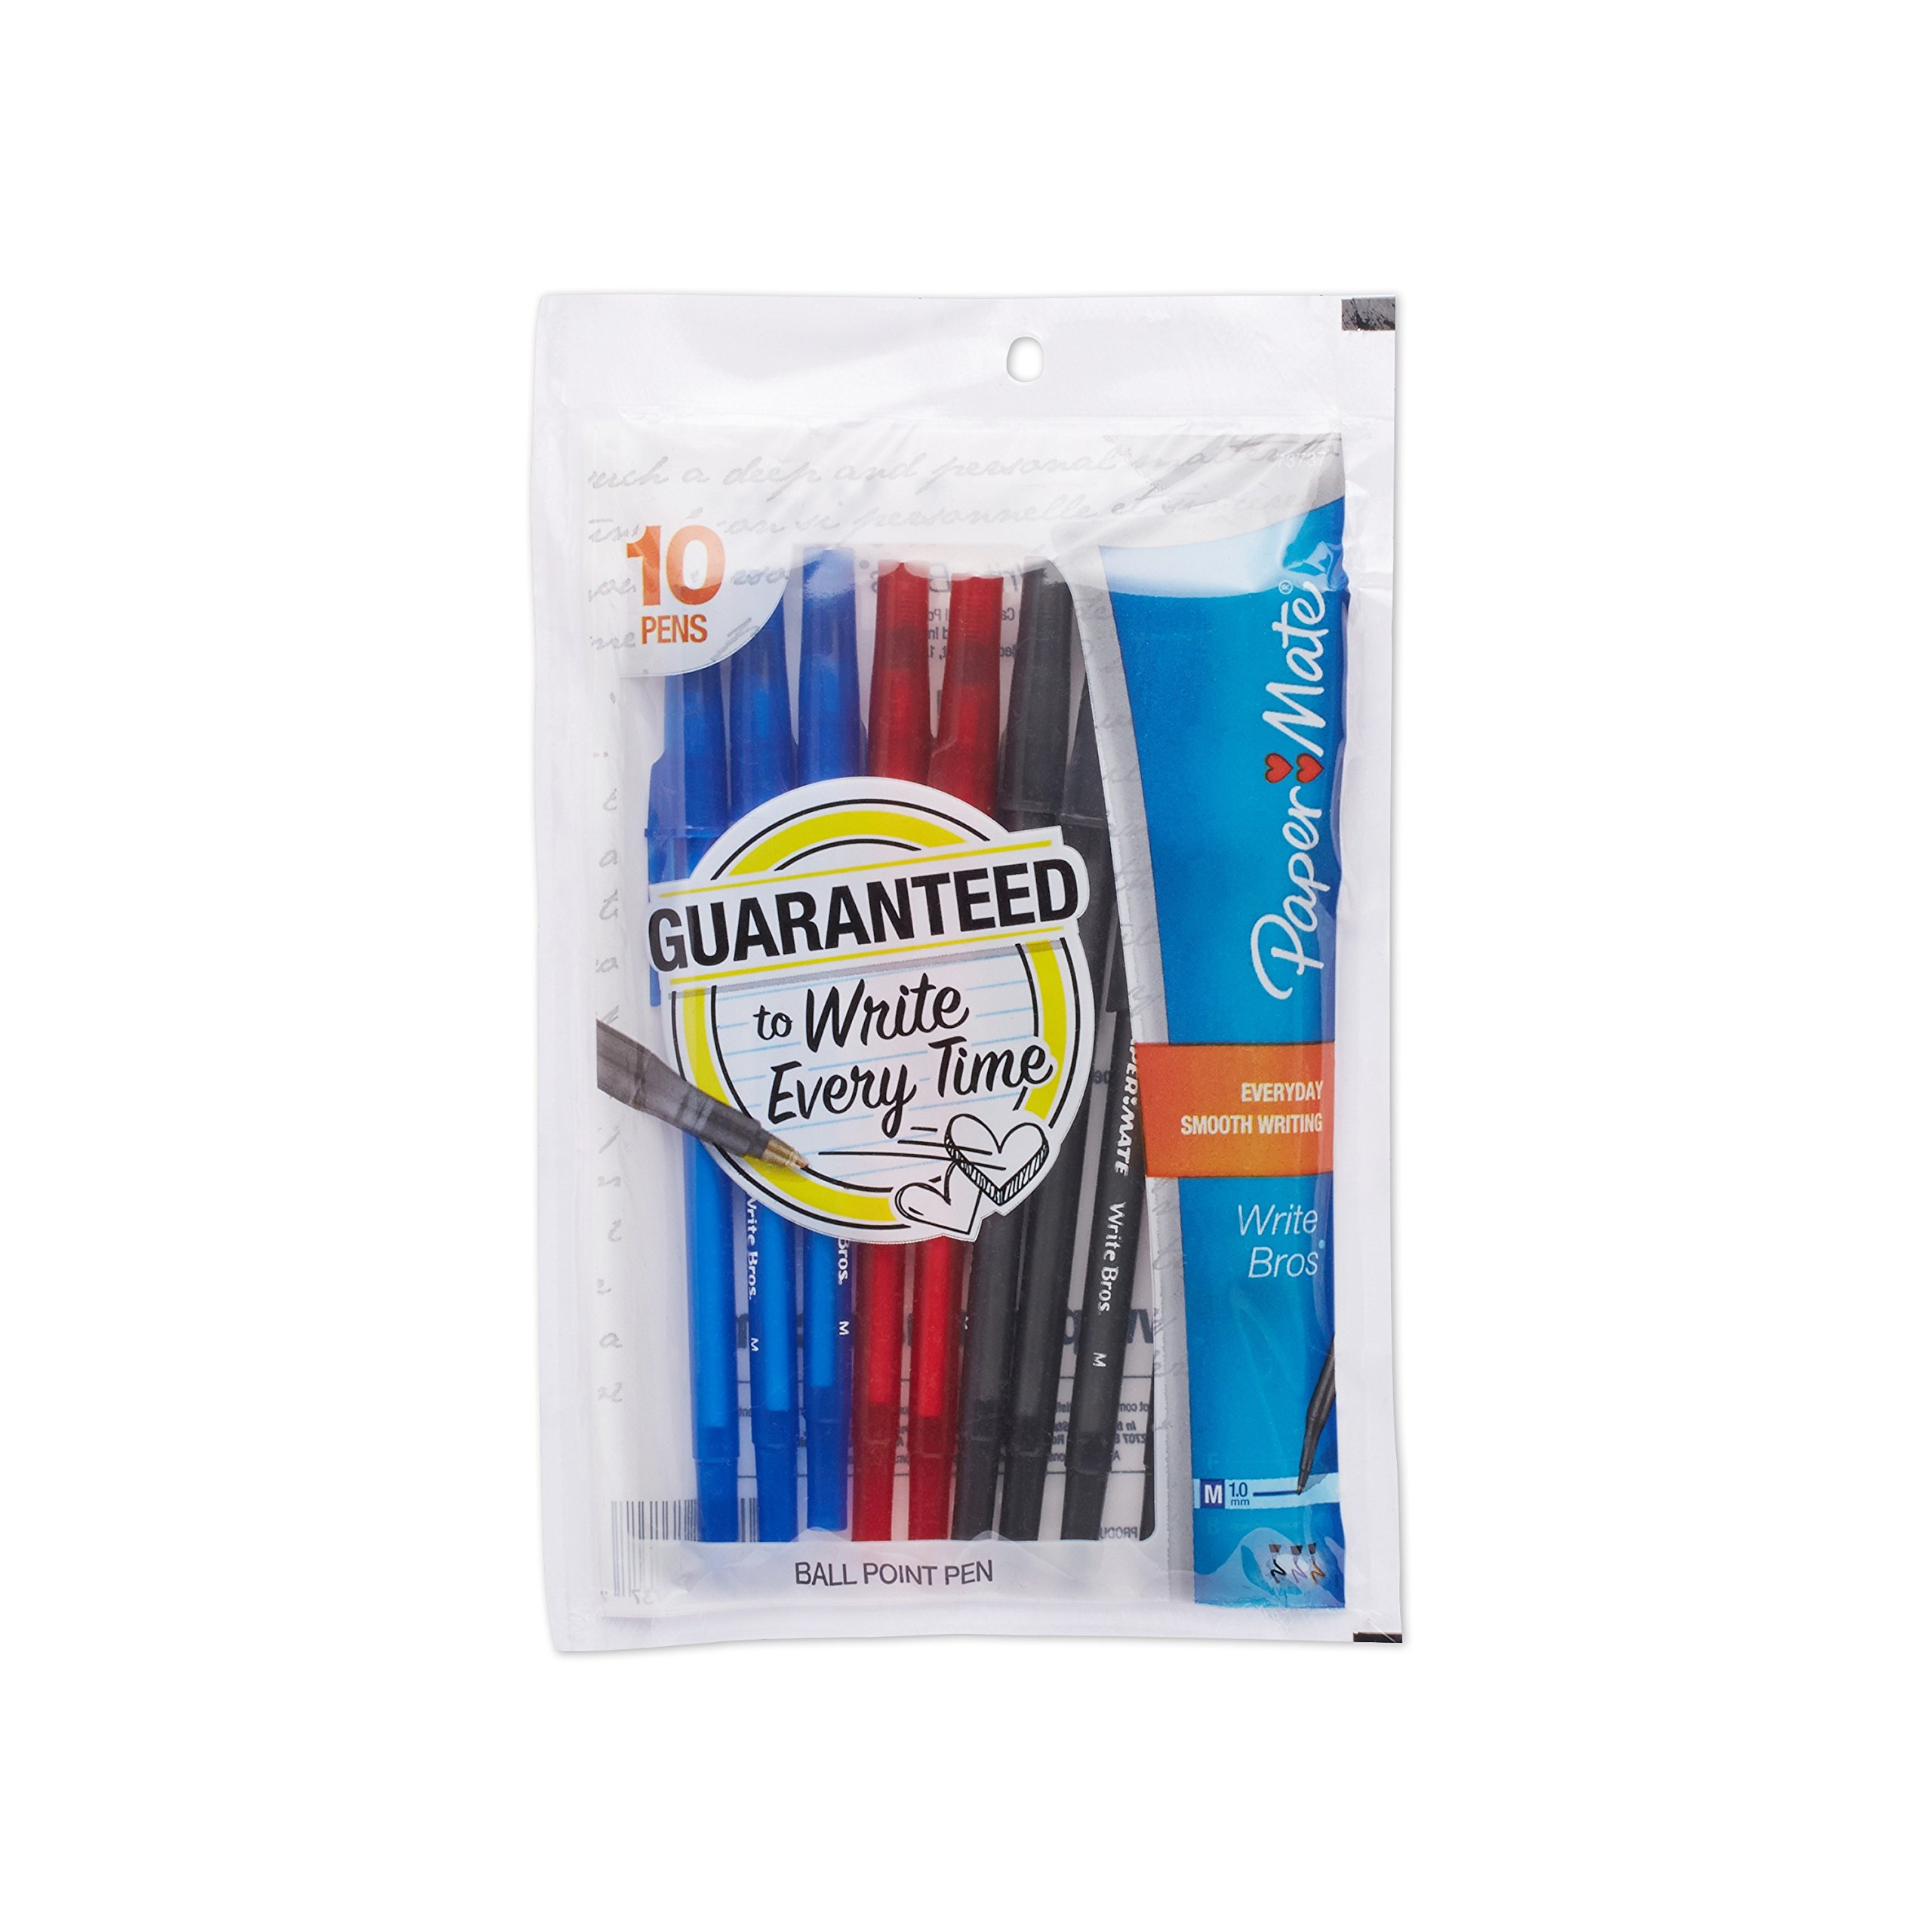 Paper Mate Write Bros Ballpoint Pens, Medium Point (1.0mm), Assorted Colors, 10 Count